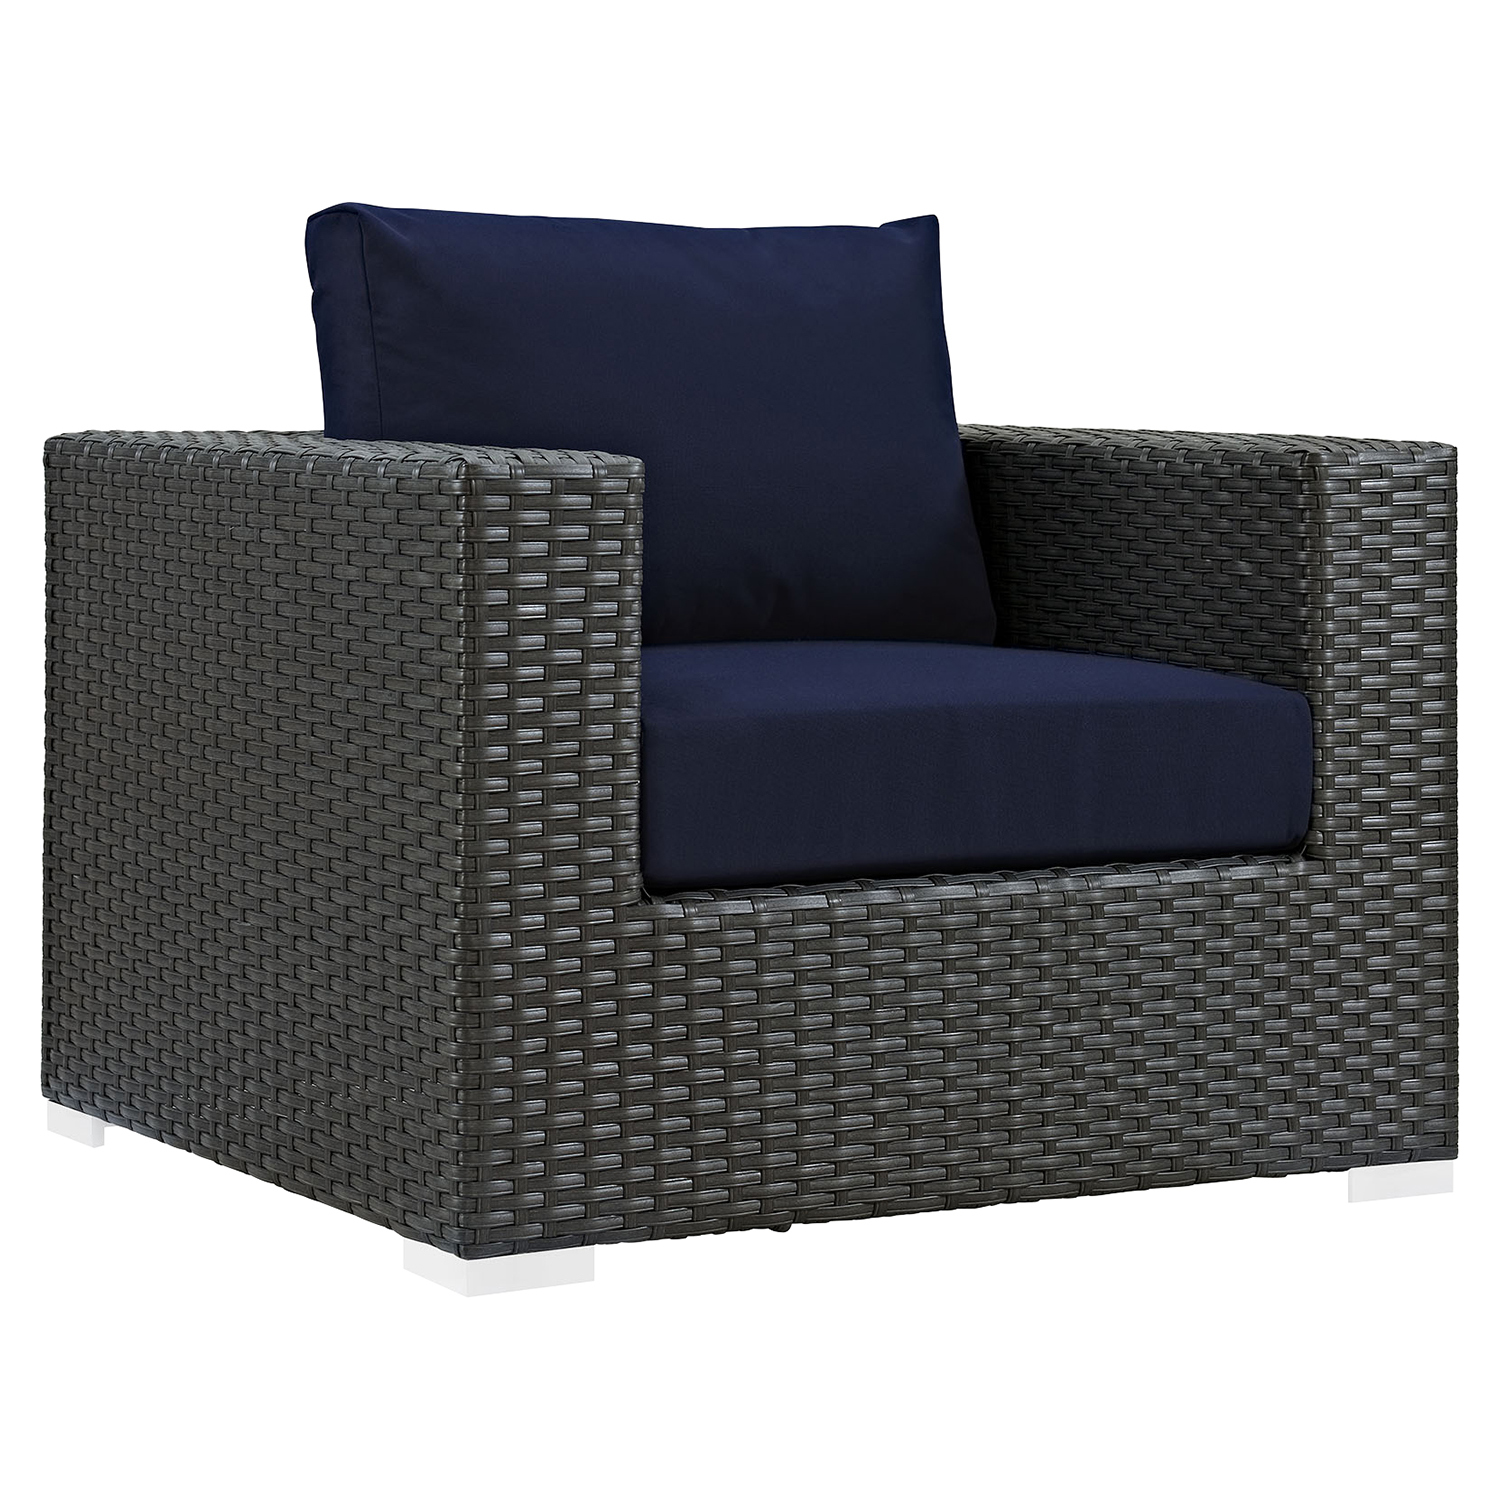 Sojourn Outdoor Patio Armchair - Sunbrella Canvas Navy - EEI-1850-CHC-NAV